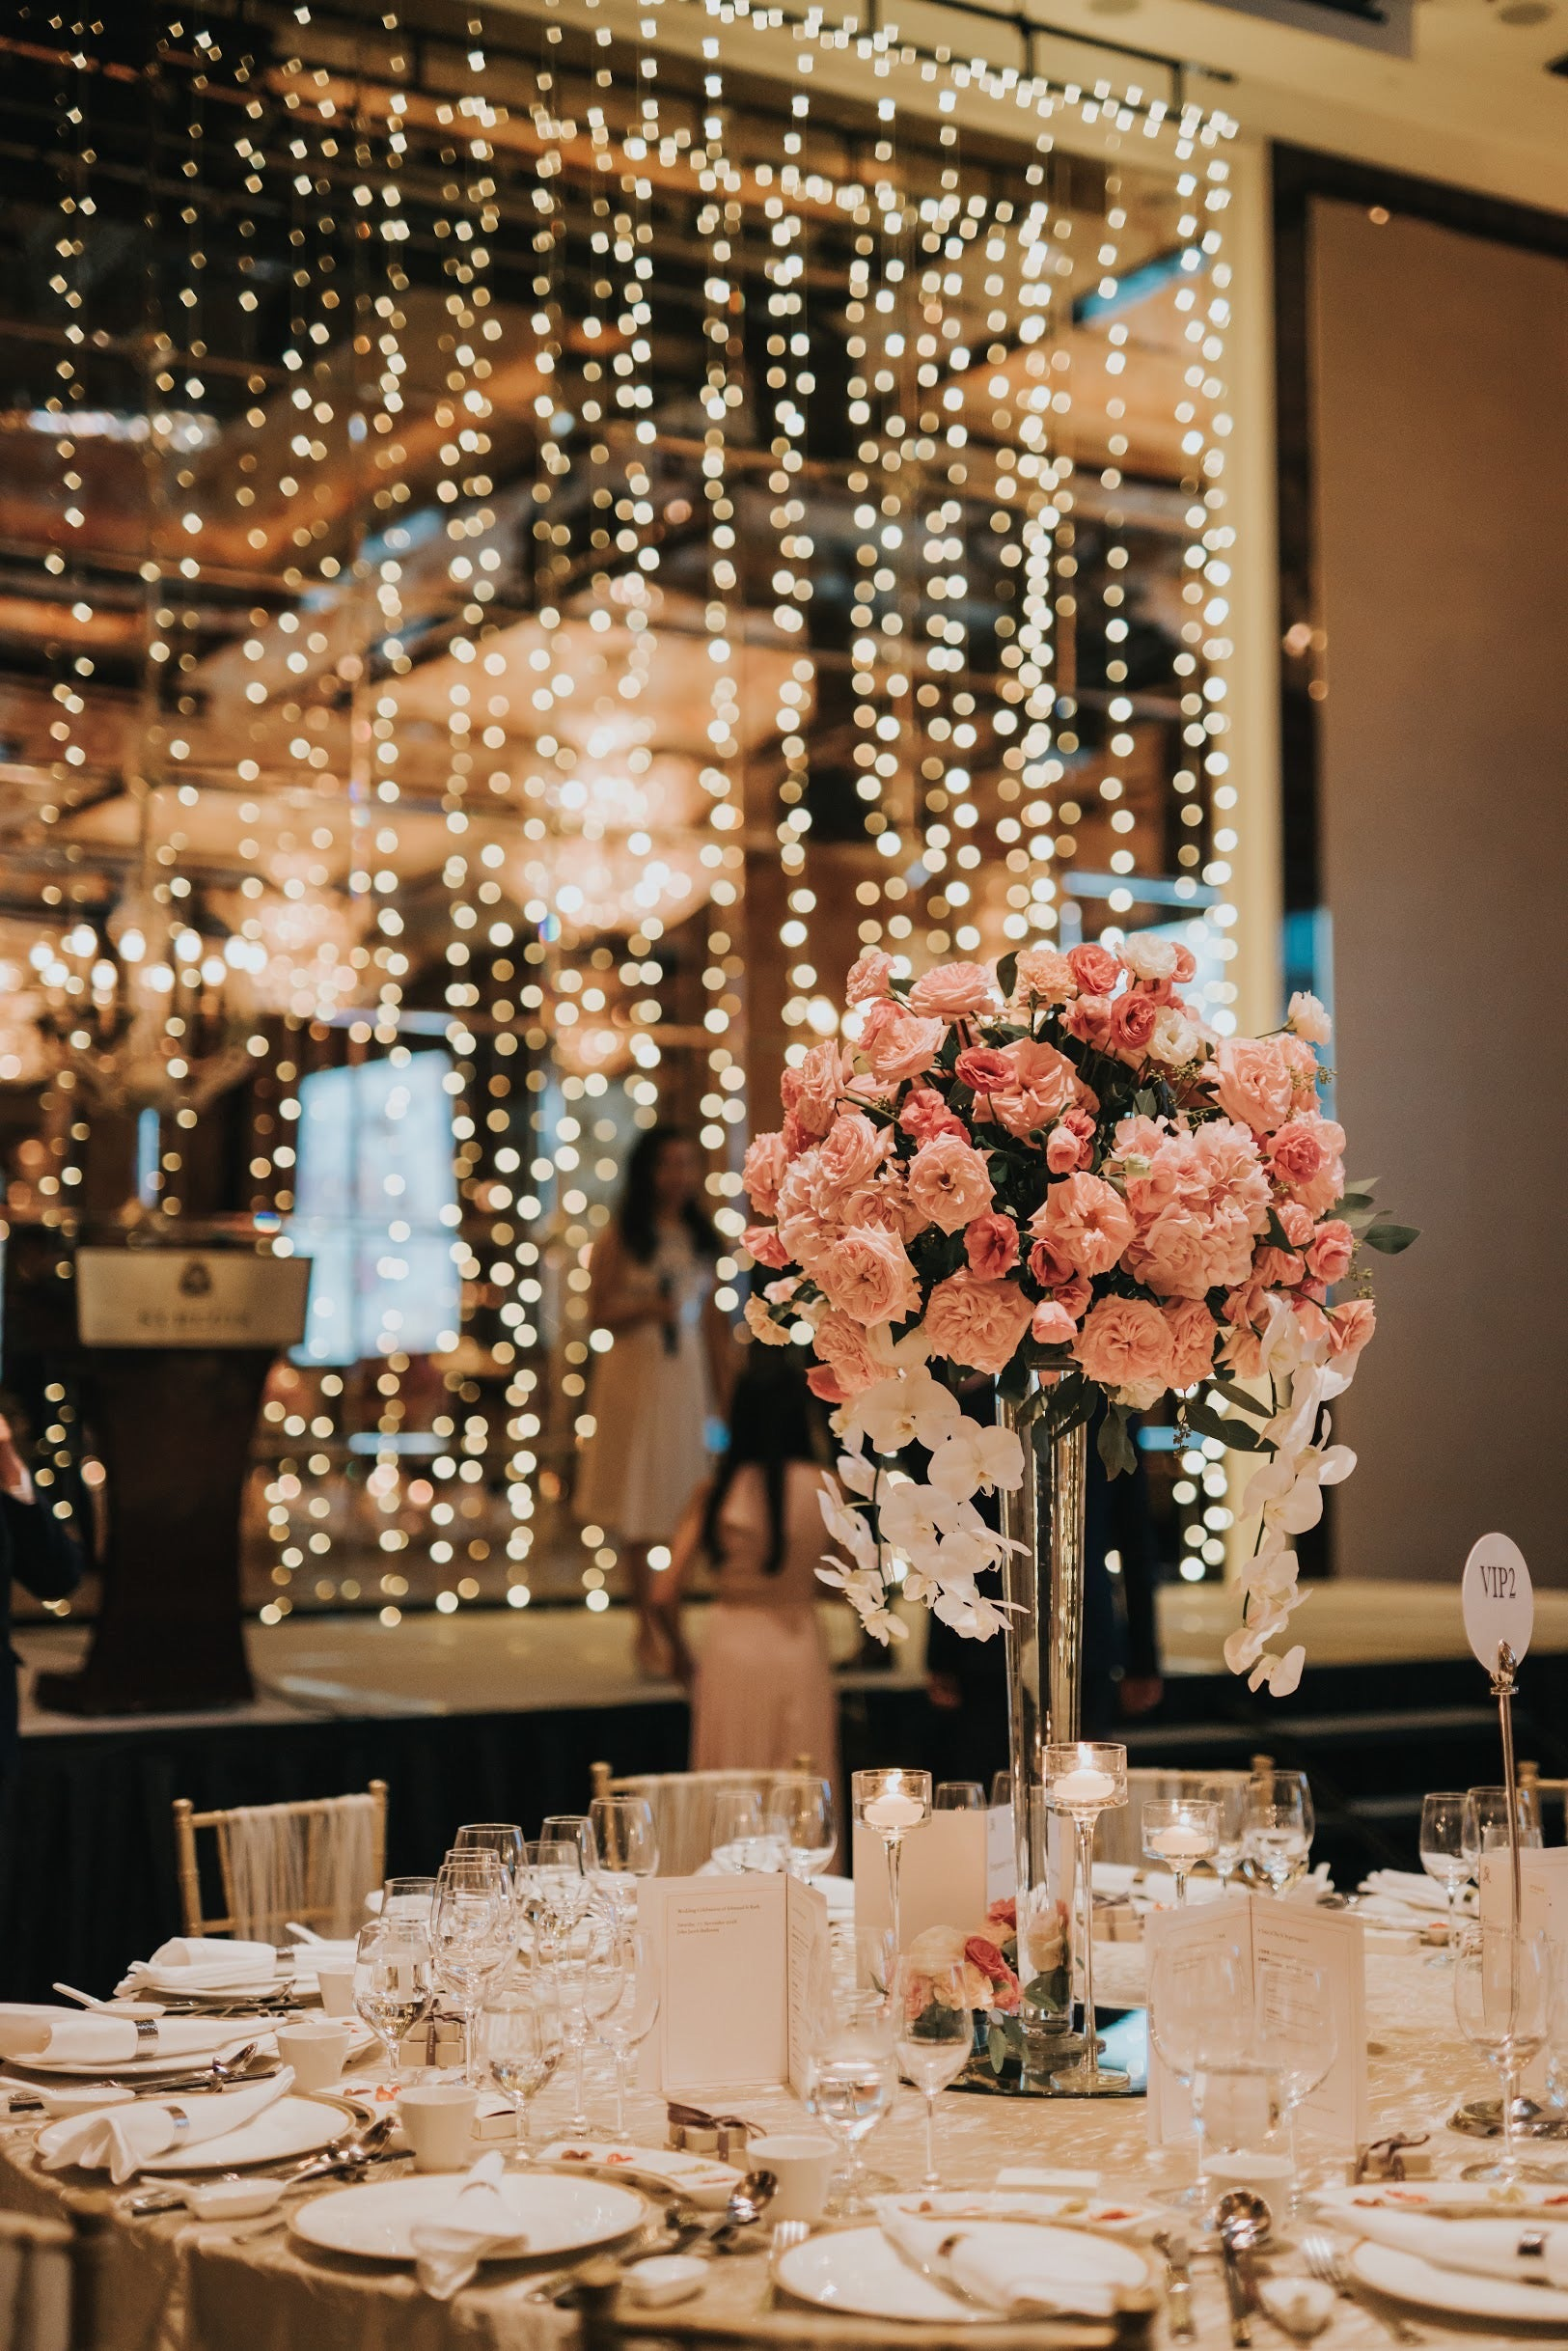 St Regis stage decoration with fairy lights in background with VIP table wedding table roses and orchids